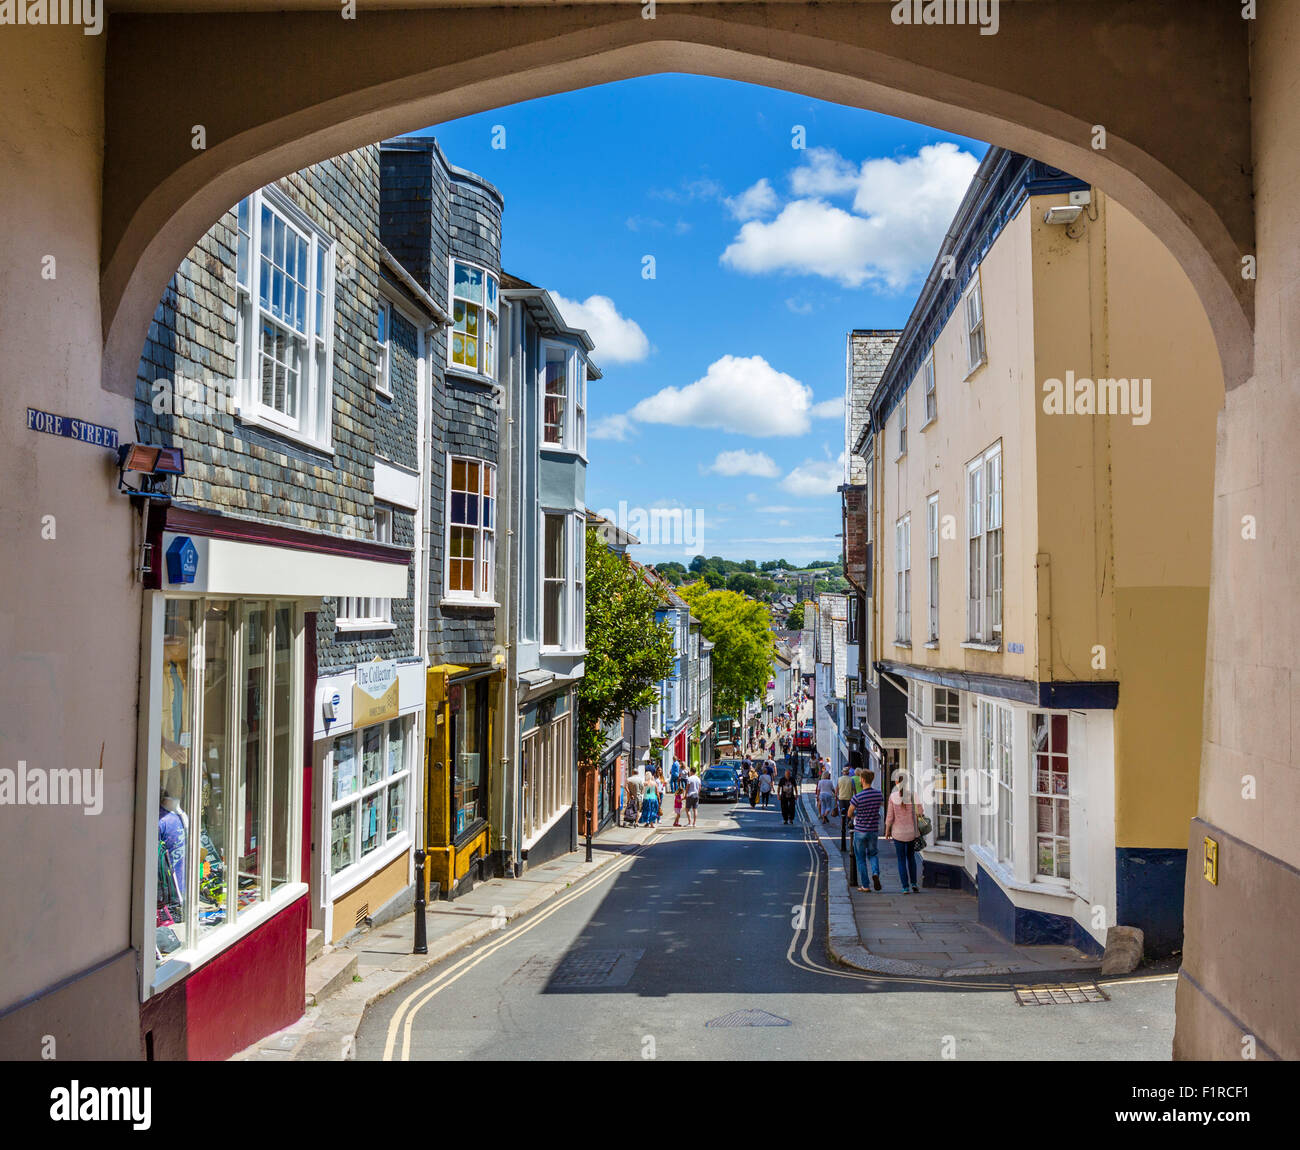 Shops on Fore Street in the town centre viewed from High Street through East Gate arch, Totnes, Devon, England, - Stock Image